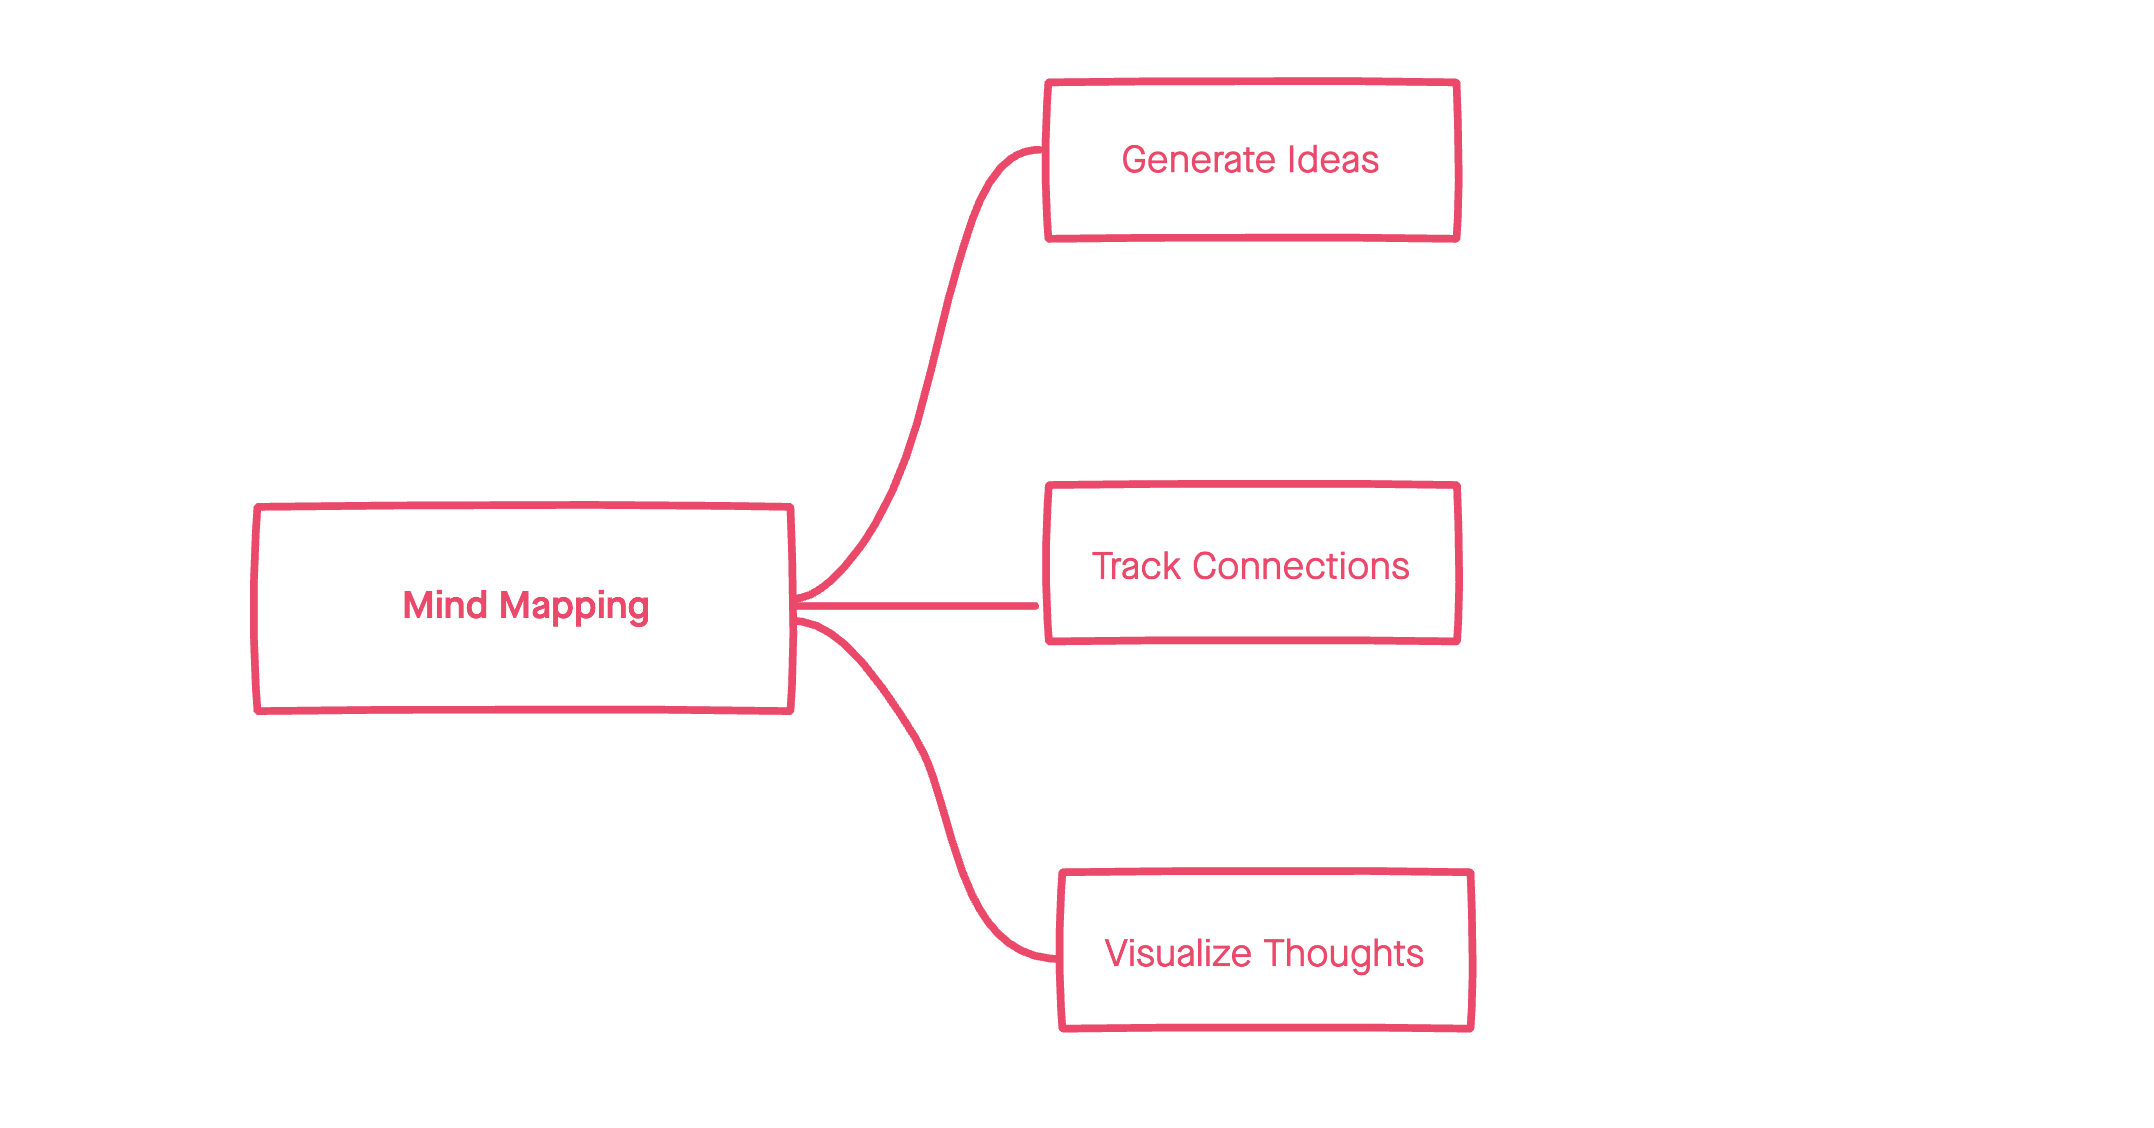 """A mind map with keywords of """"generate ideas,"""" """"track connections,"""" and """"visualize thoughts"""""""